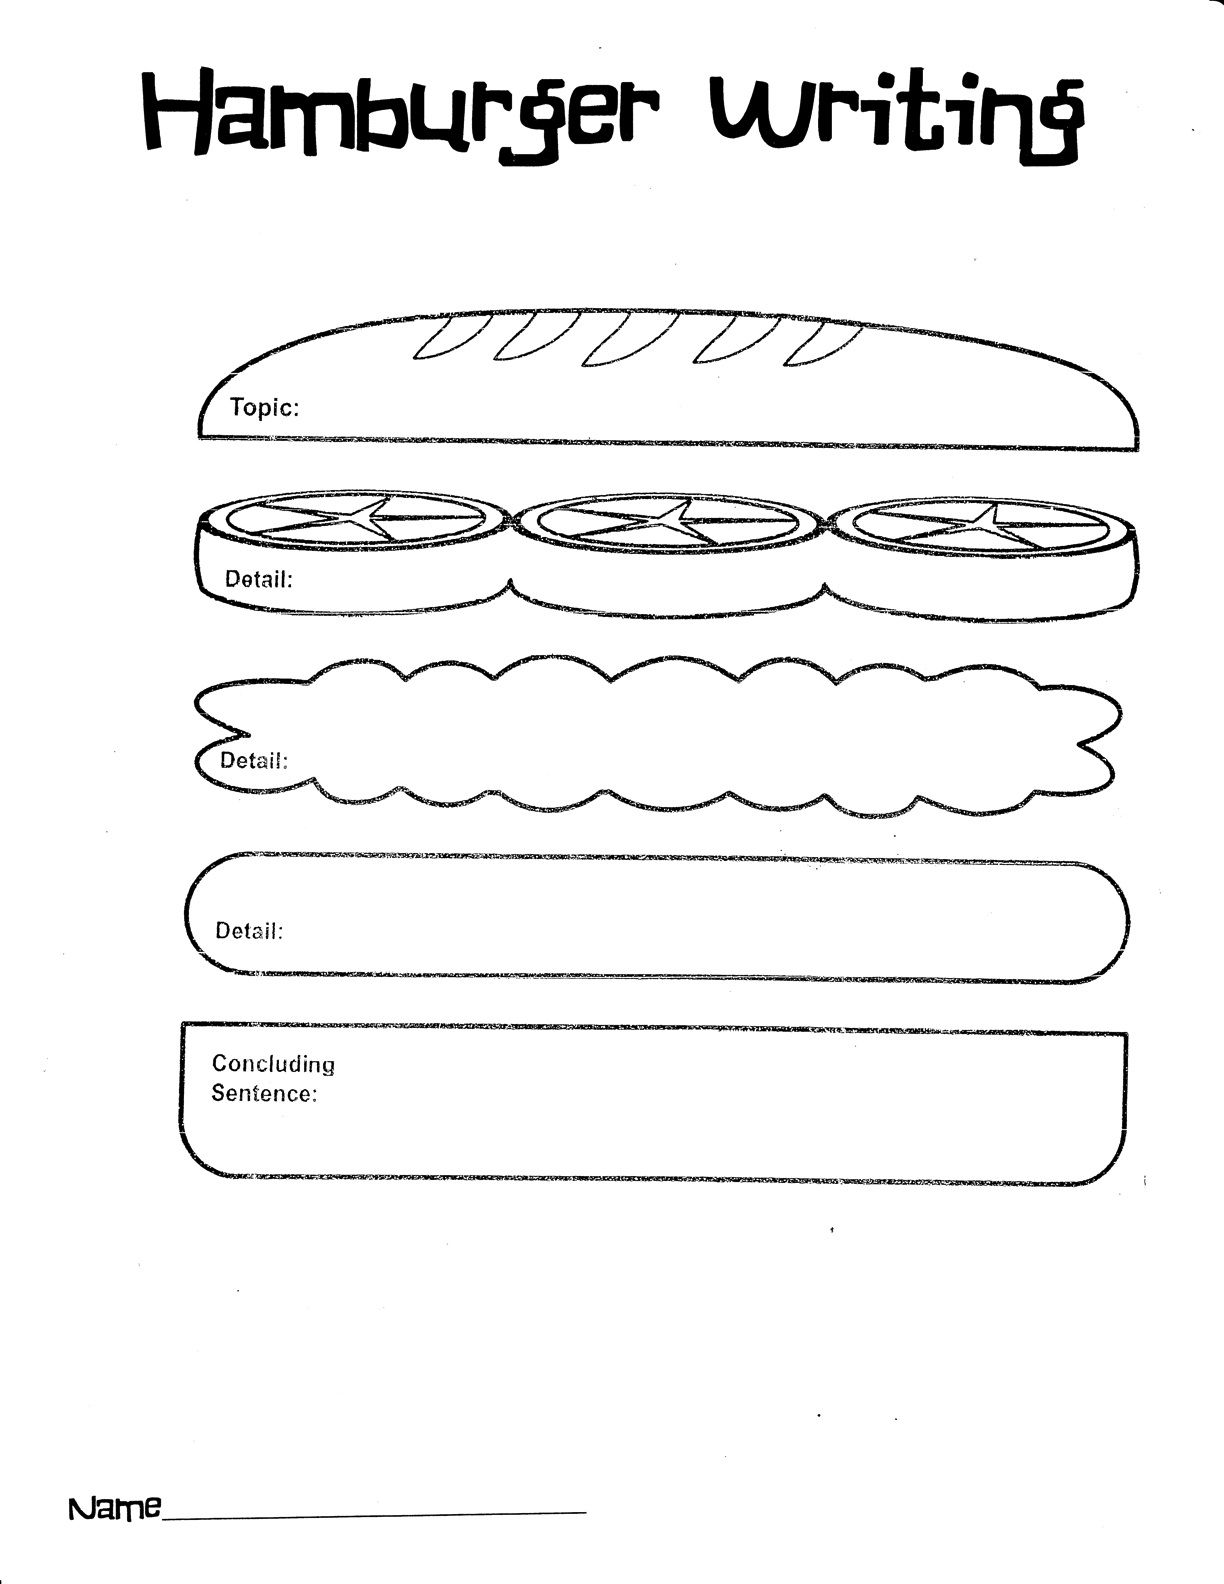 prewriting outline template - hamburger graphic organizer to teach paragraphing